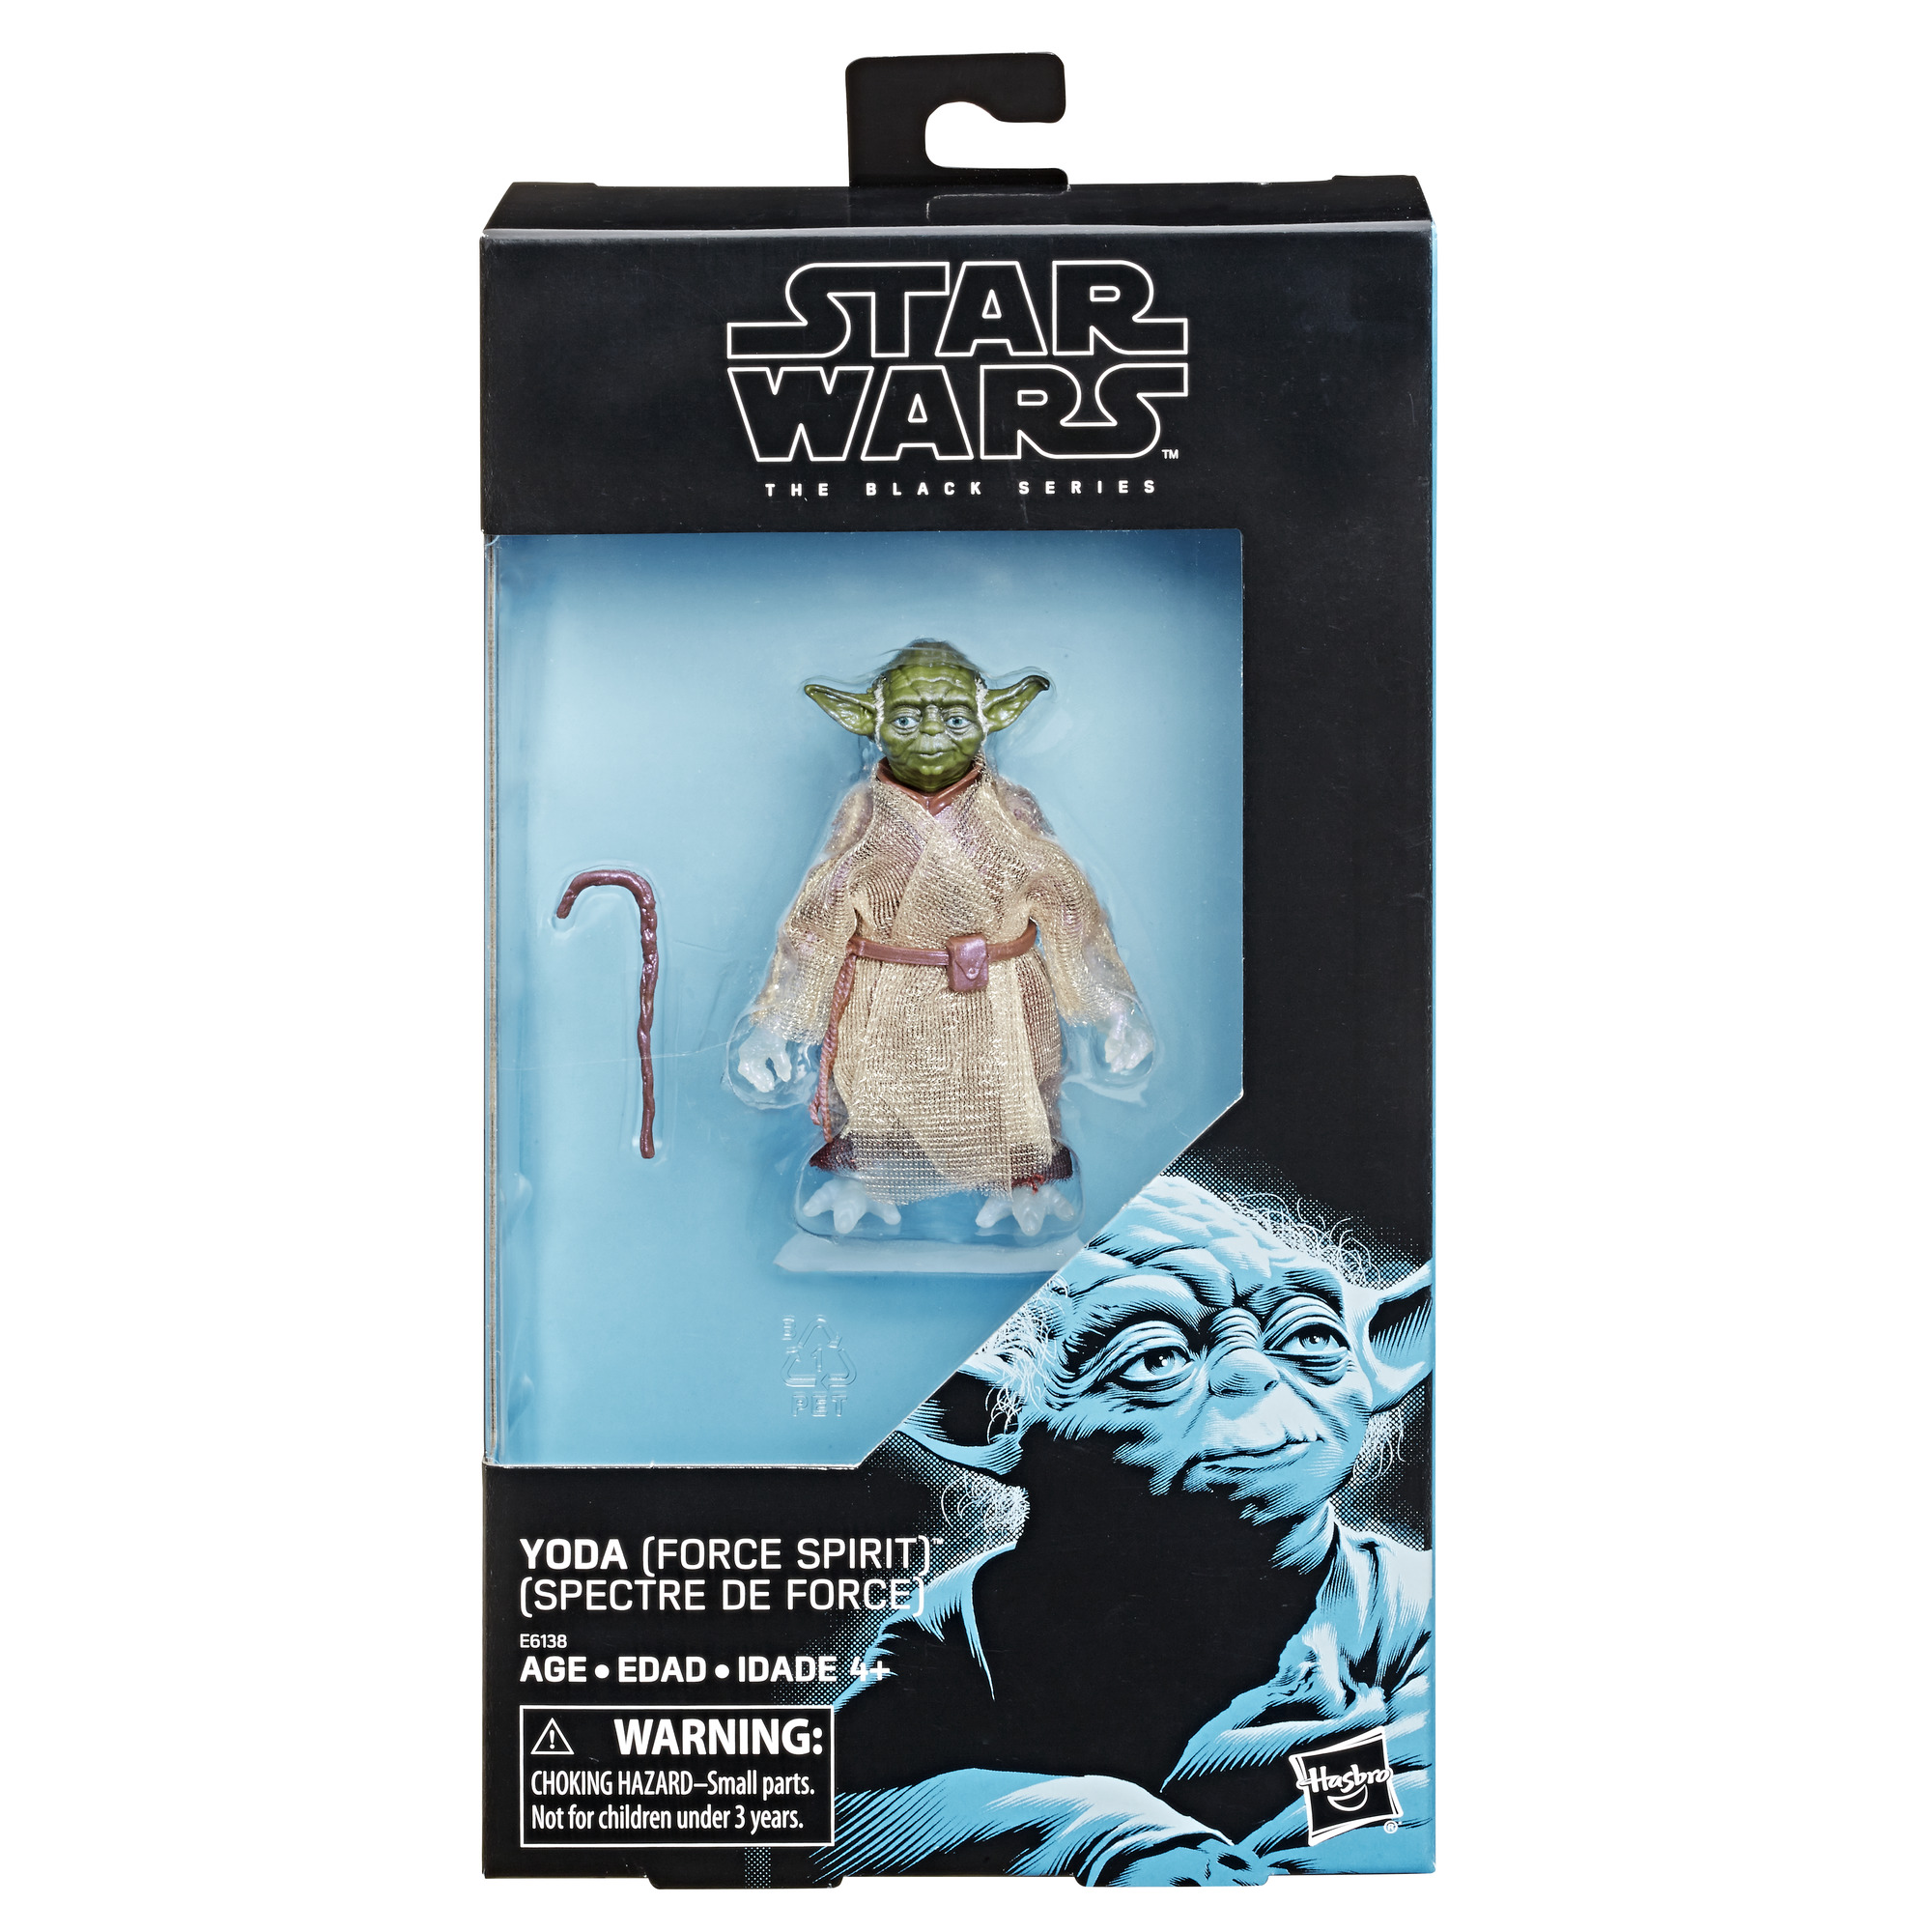 TLJ Yoda (Force Spirit) BS Figure 1